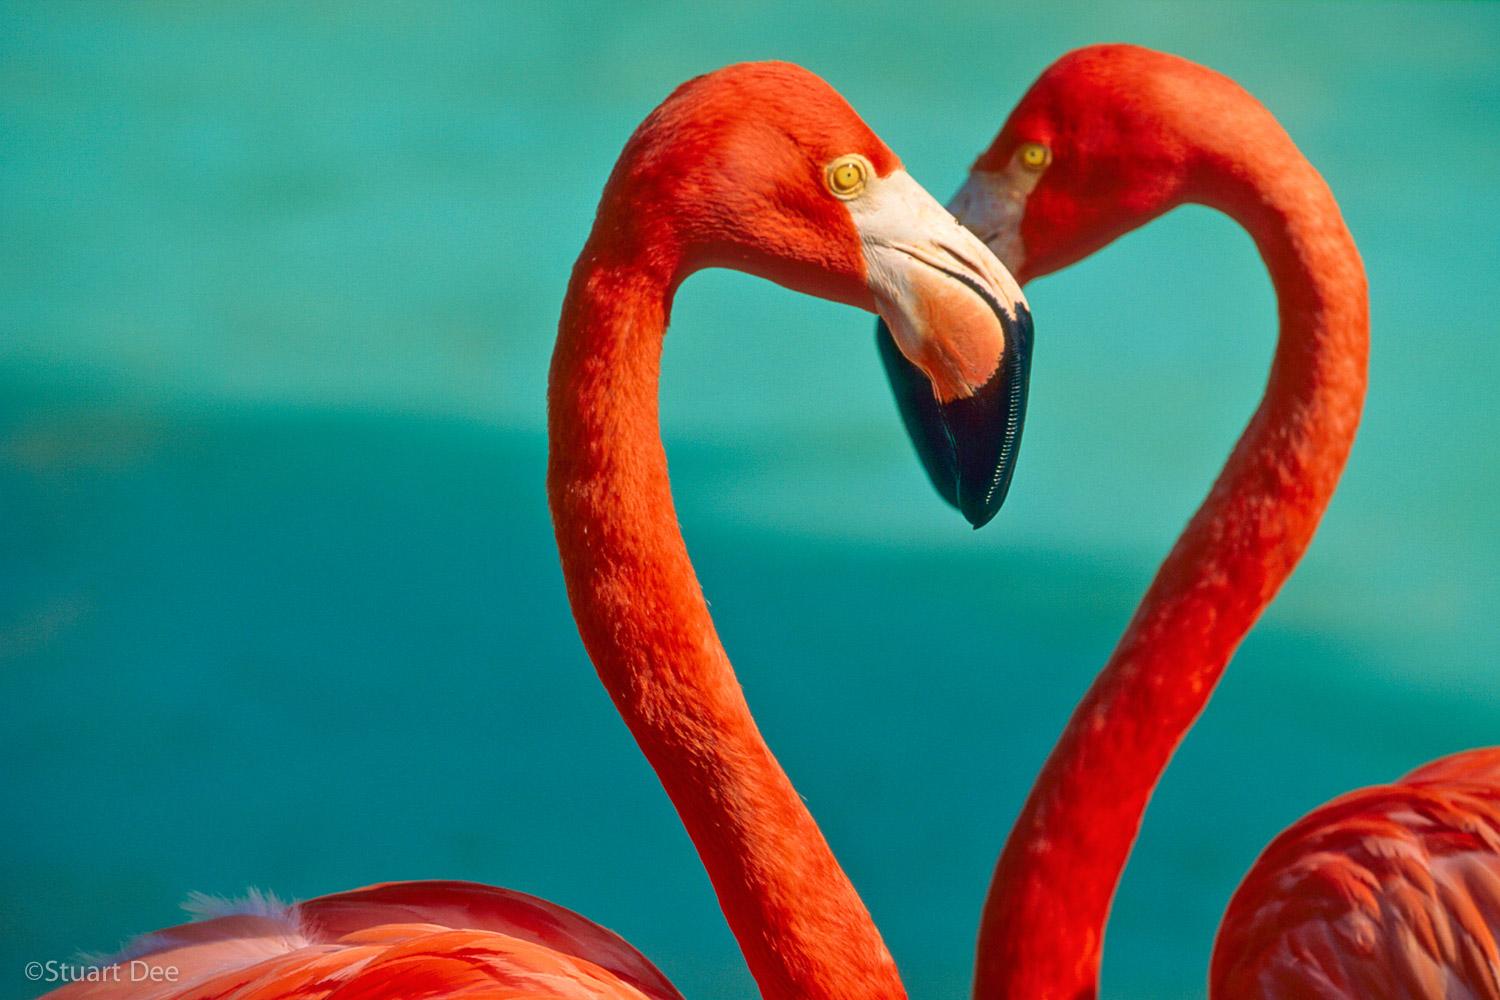 Two flamingoes forming heart with their necks, Hawaii, USA